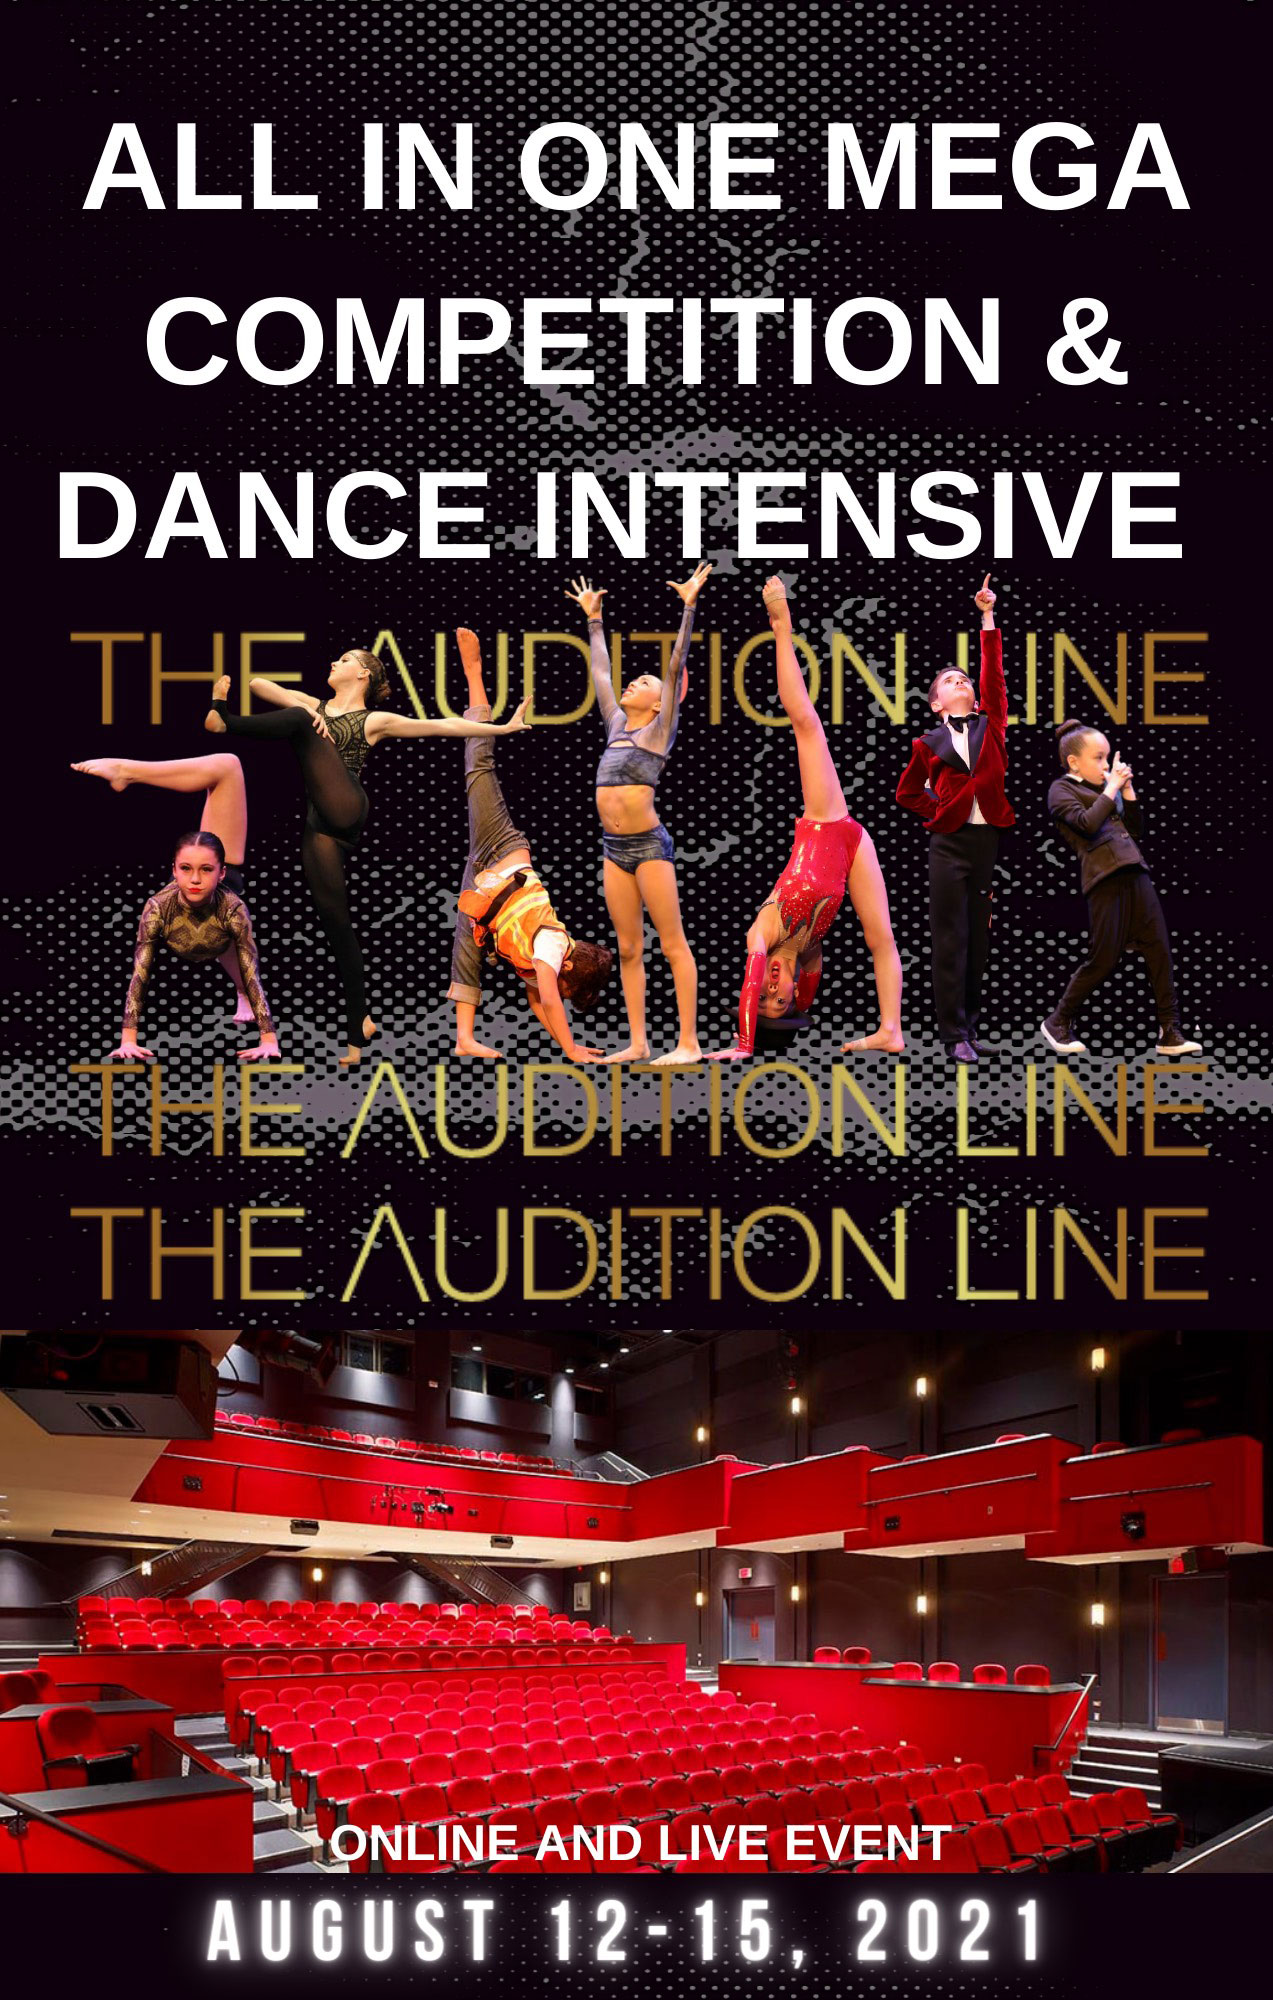 Audition Line